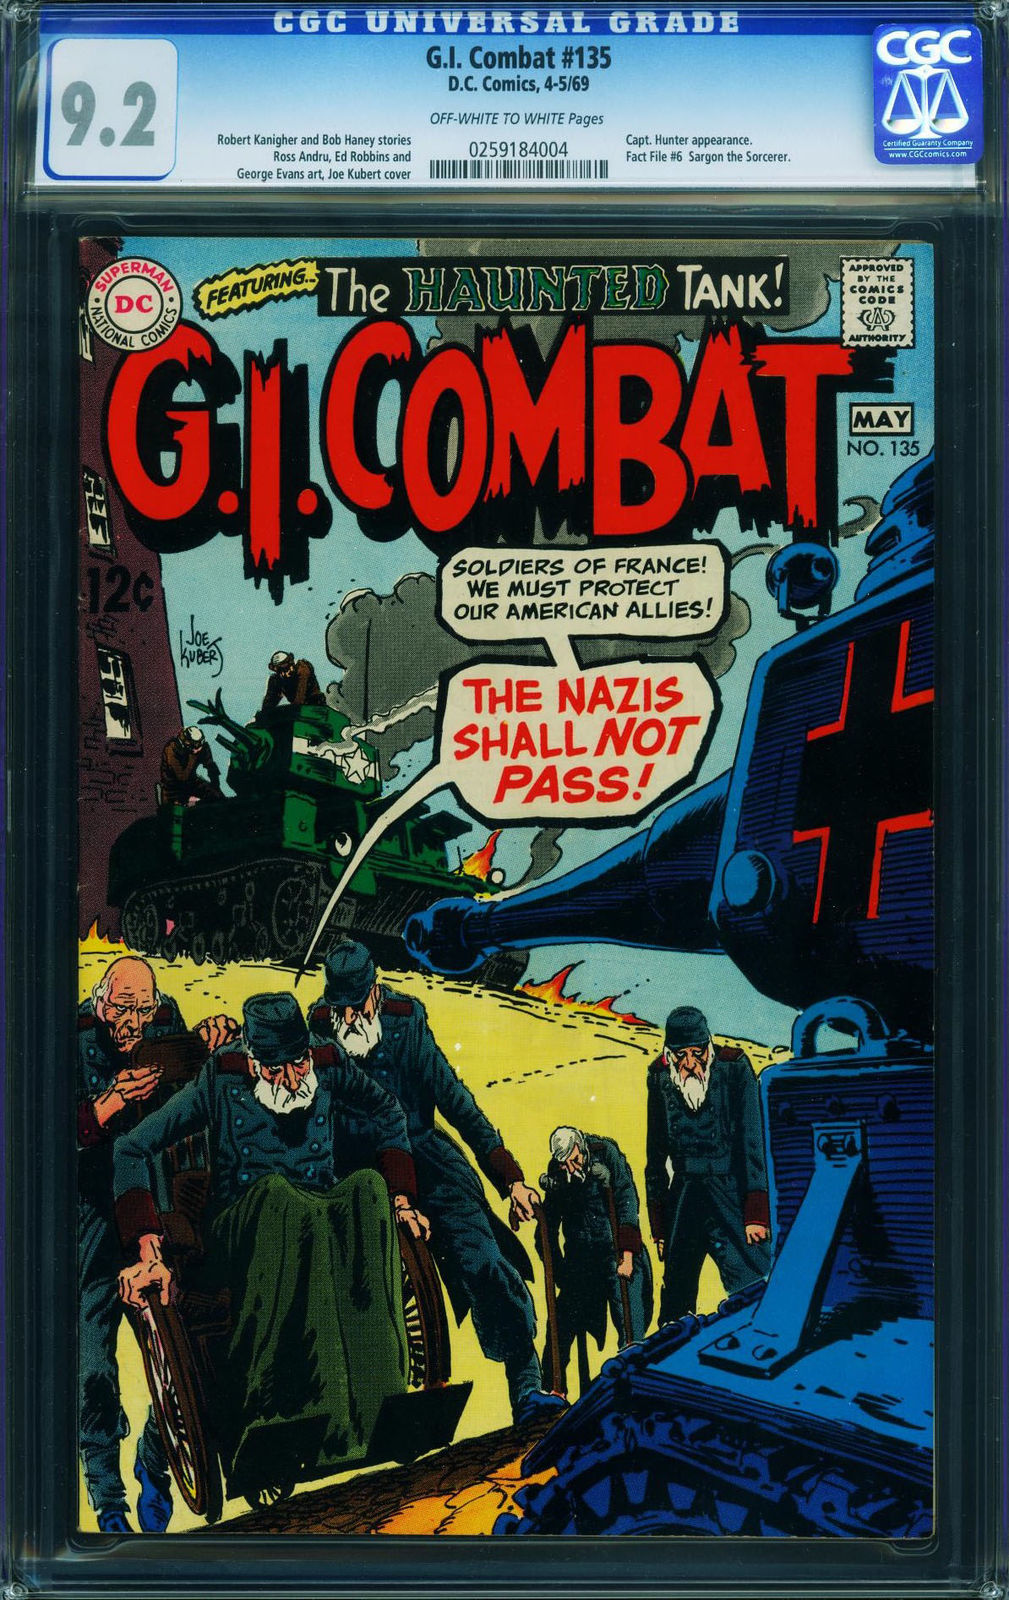 G.I. COMBAT #135 CGC 9.2 1967-DC-WWII STORIES- HAUNTED TANK 0259184004